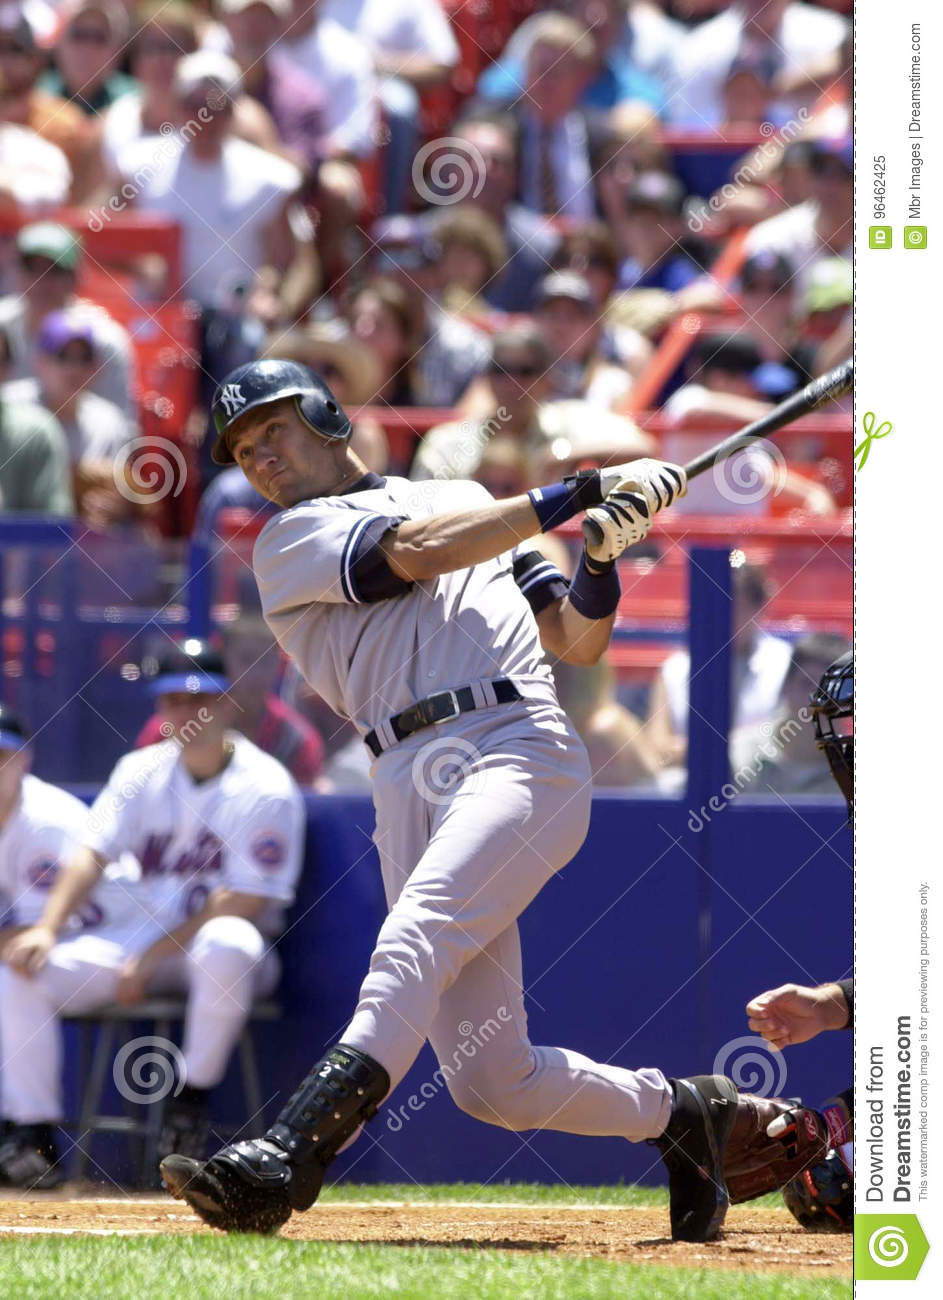 Derek jeter swinging consider, that